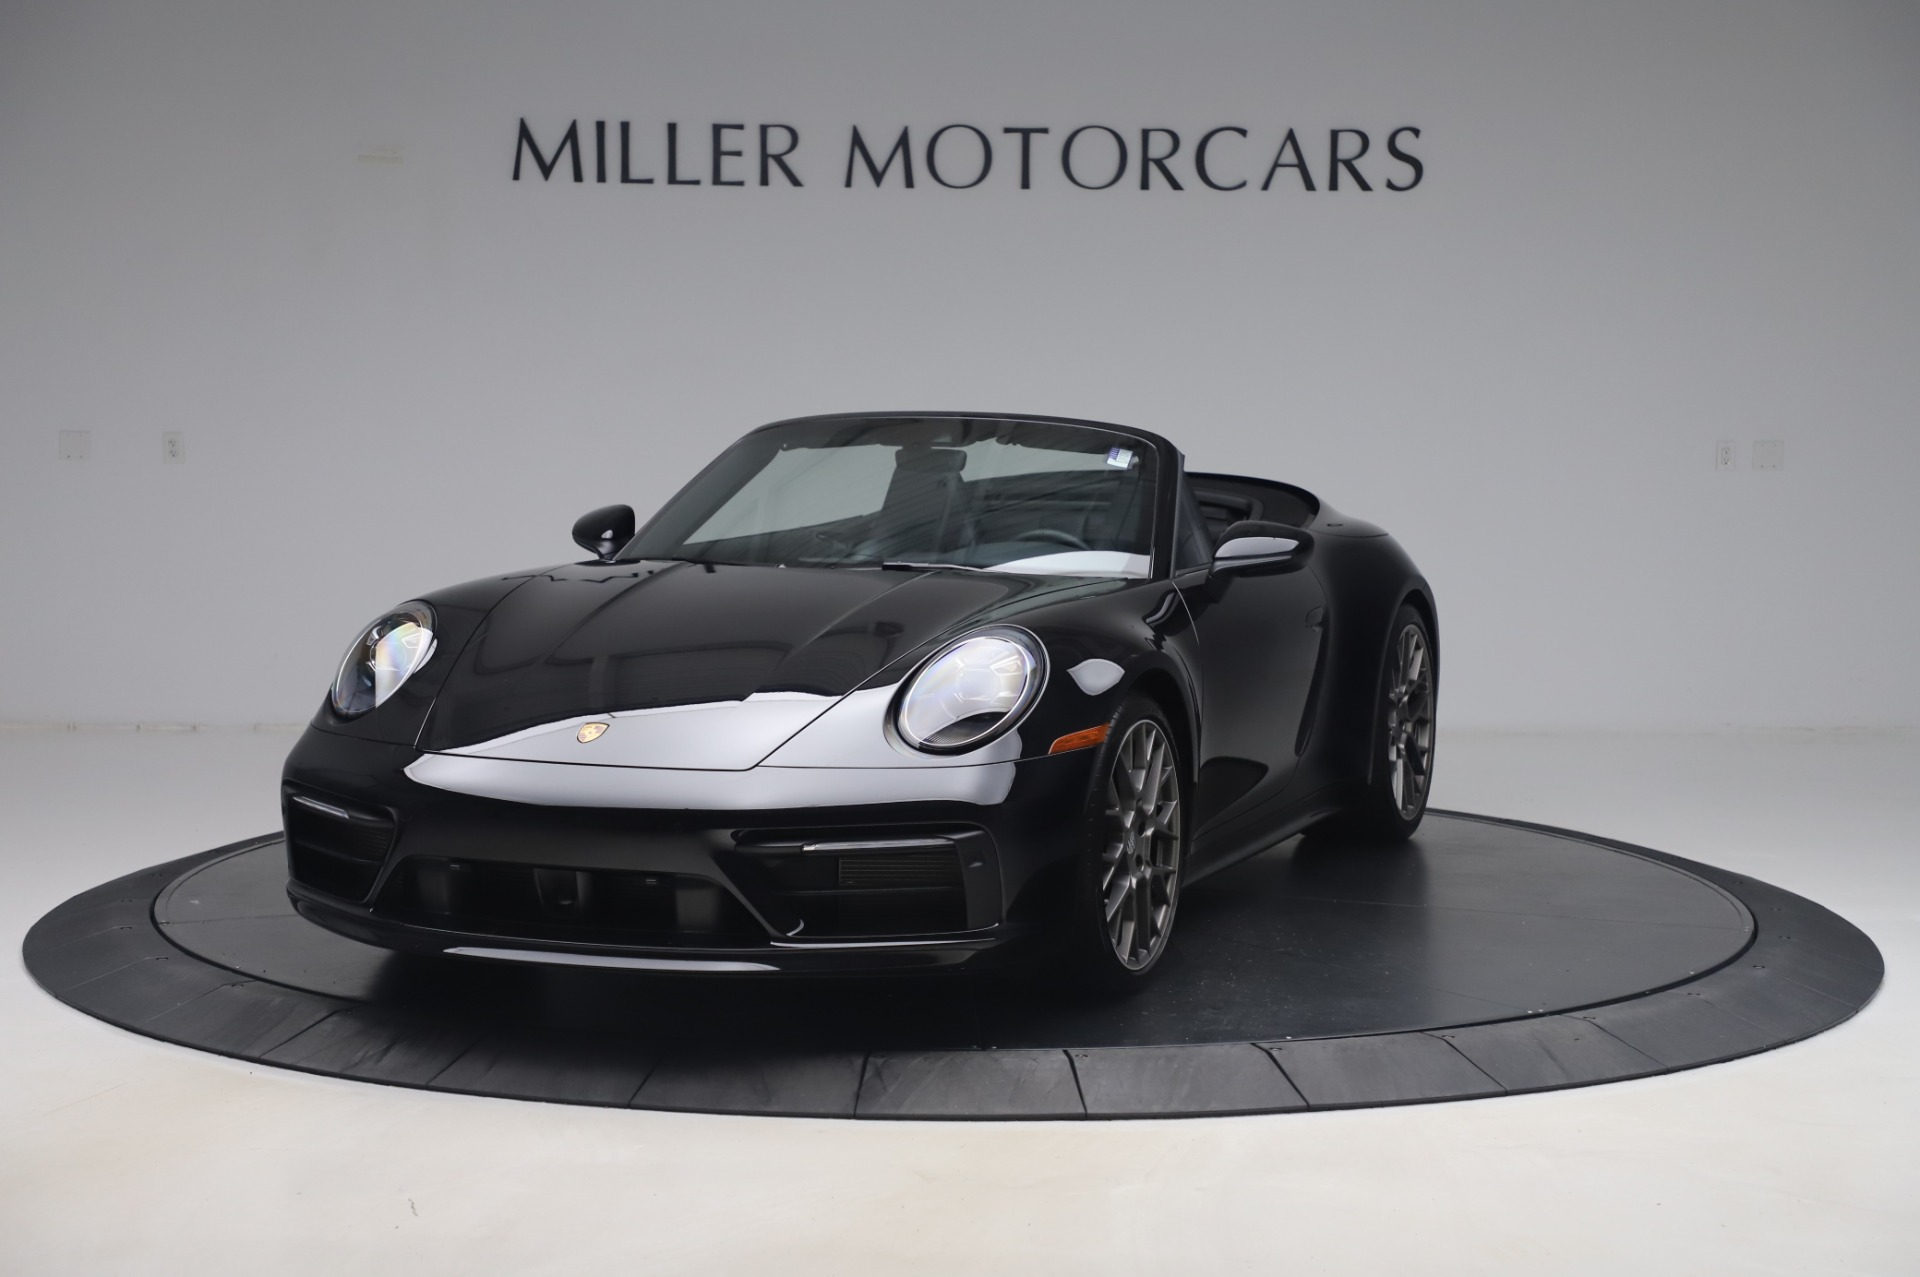 Used 2020 Porsche 911 Carrera 4S for sale Call for price at Rolls-Royce Motor Cars Greenwich in Greenwich CT 06830 1